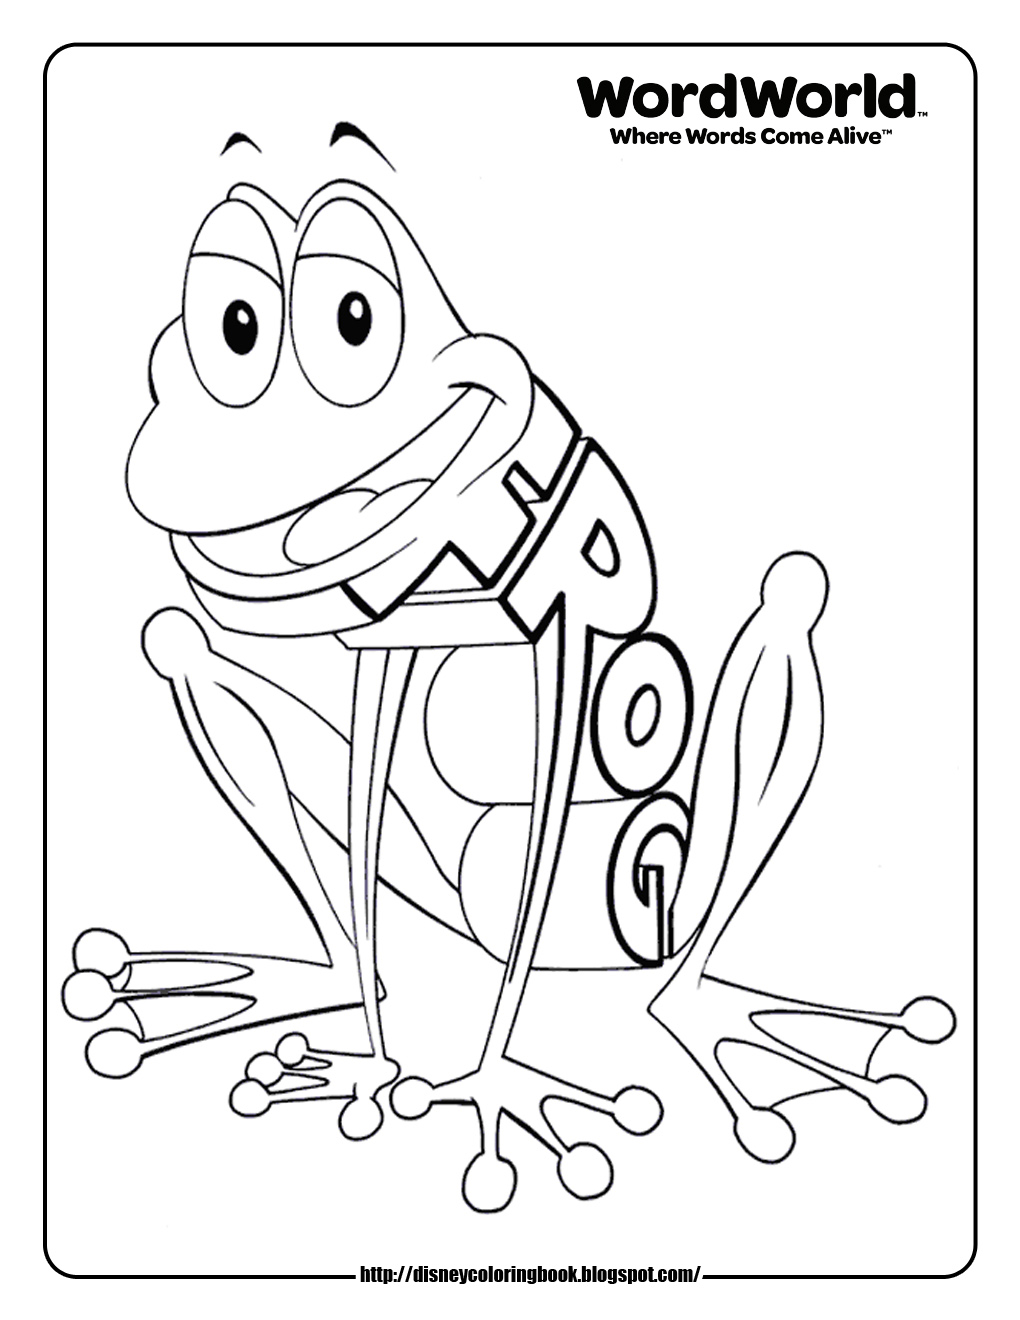 word world coloring pages # 7